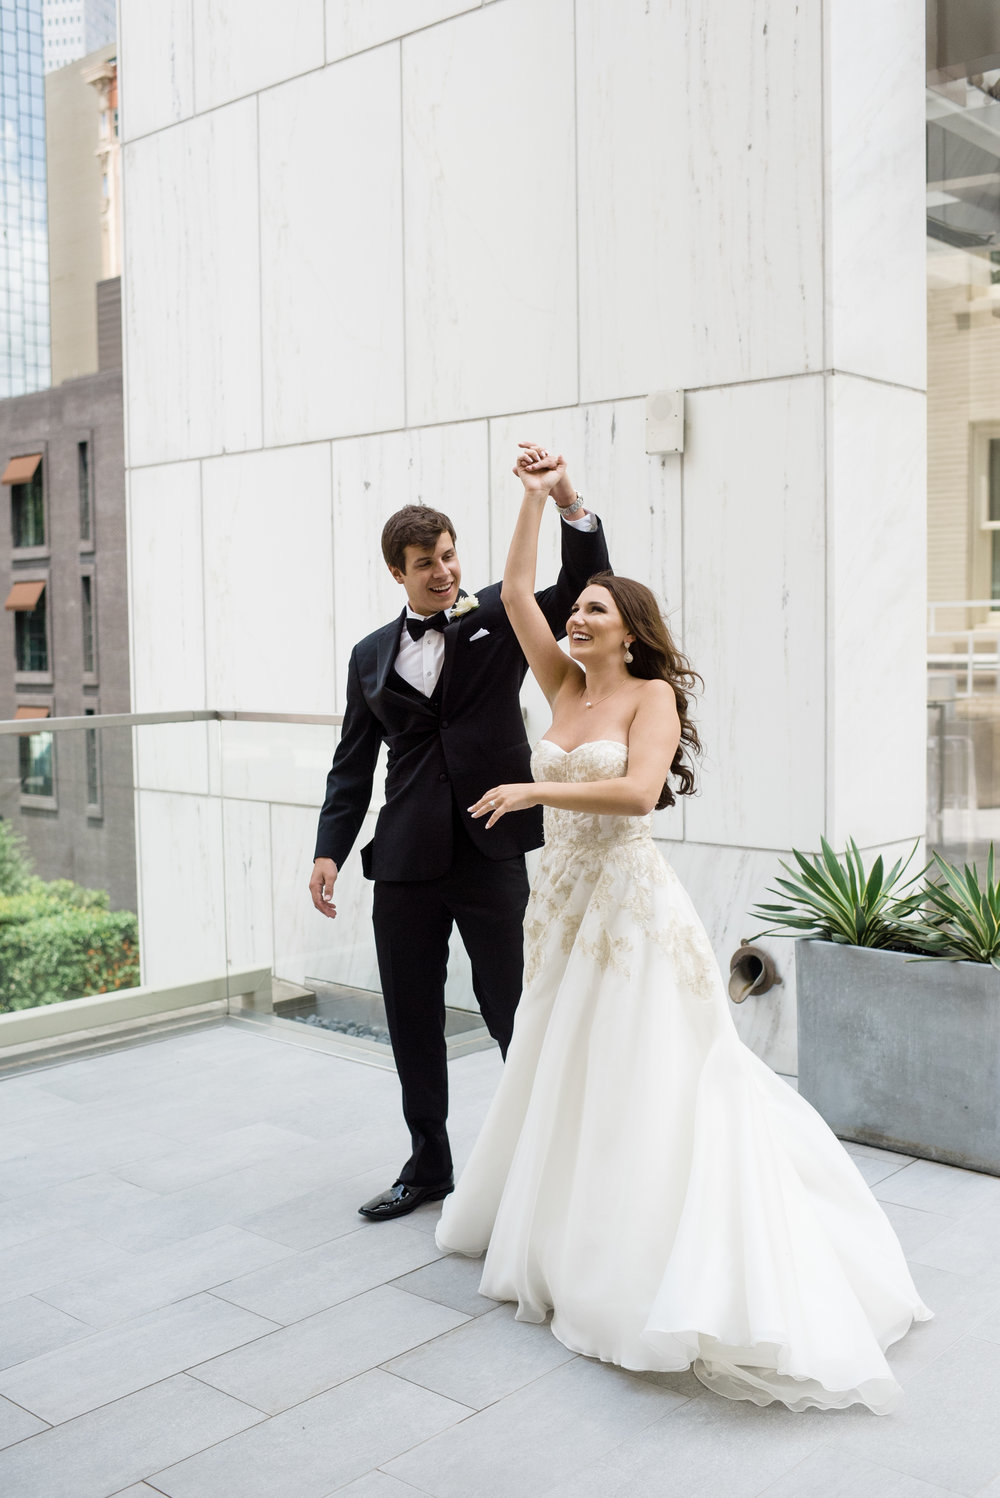 Couple Details - Dallas, Tx - Spring Wedding - Julian Leaver Events